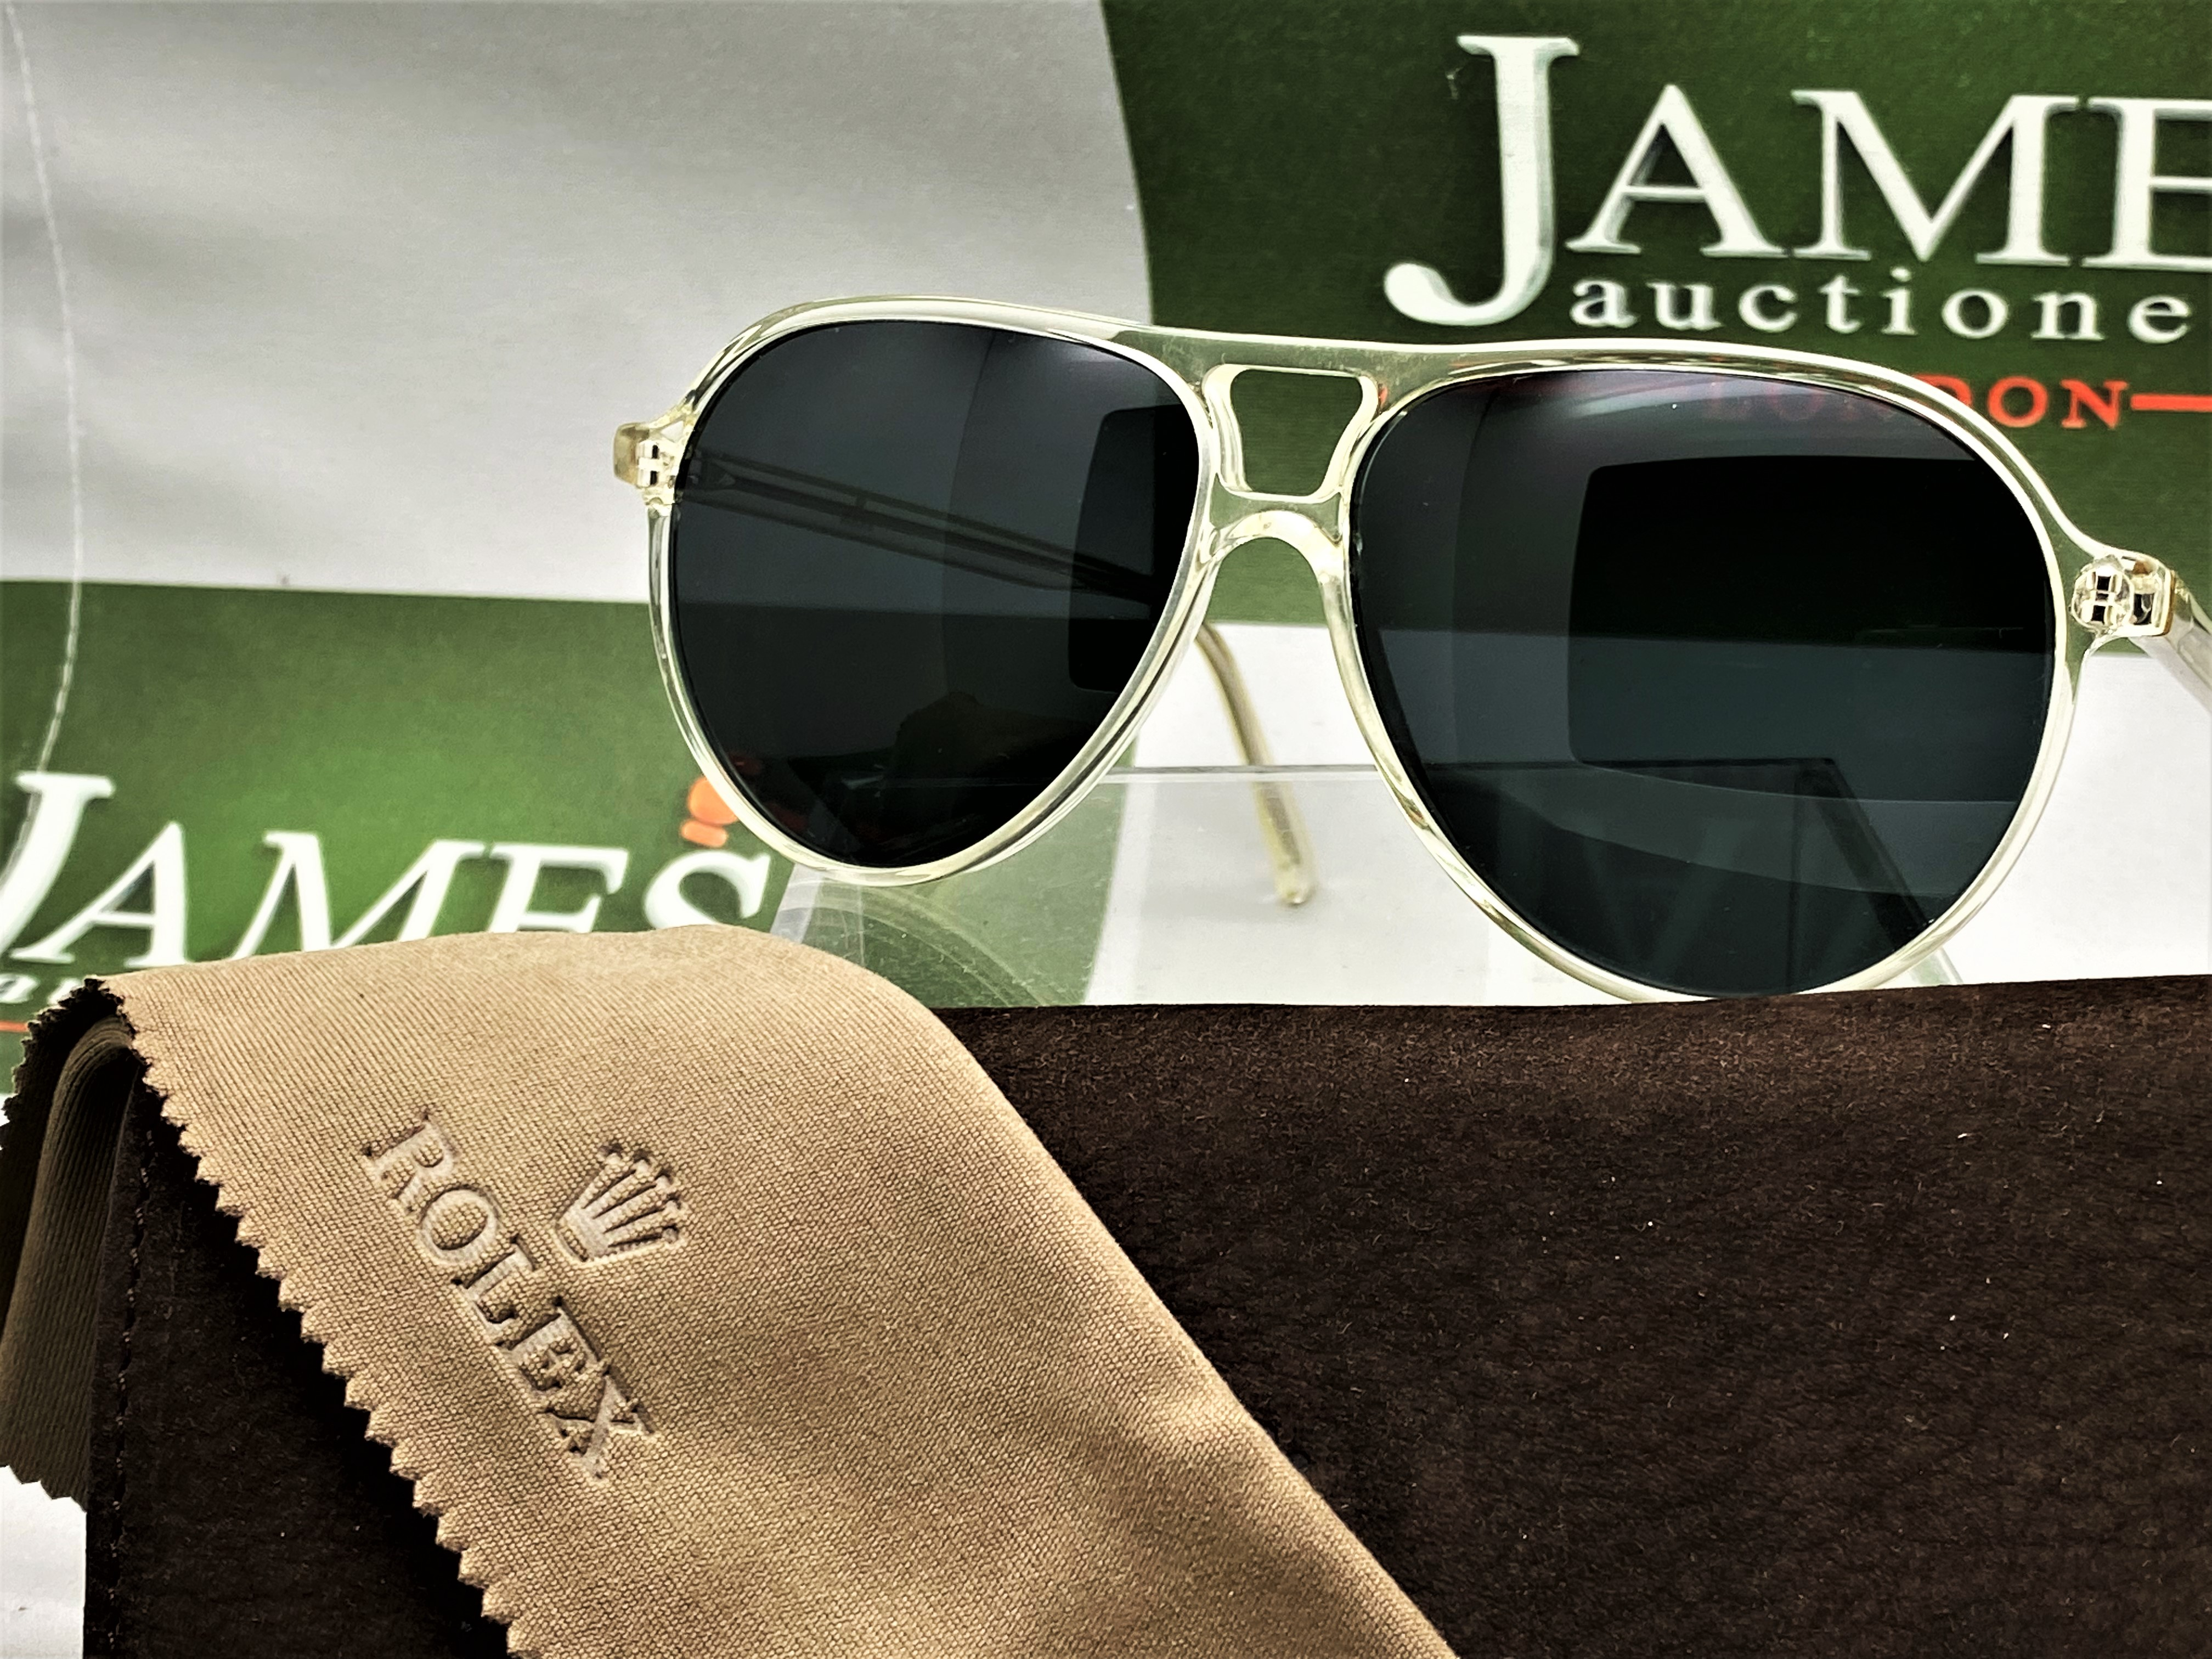 Rolex Official Merchandise Sunglasses-New Examples, Very Rare. - Image 6 of 7